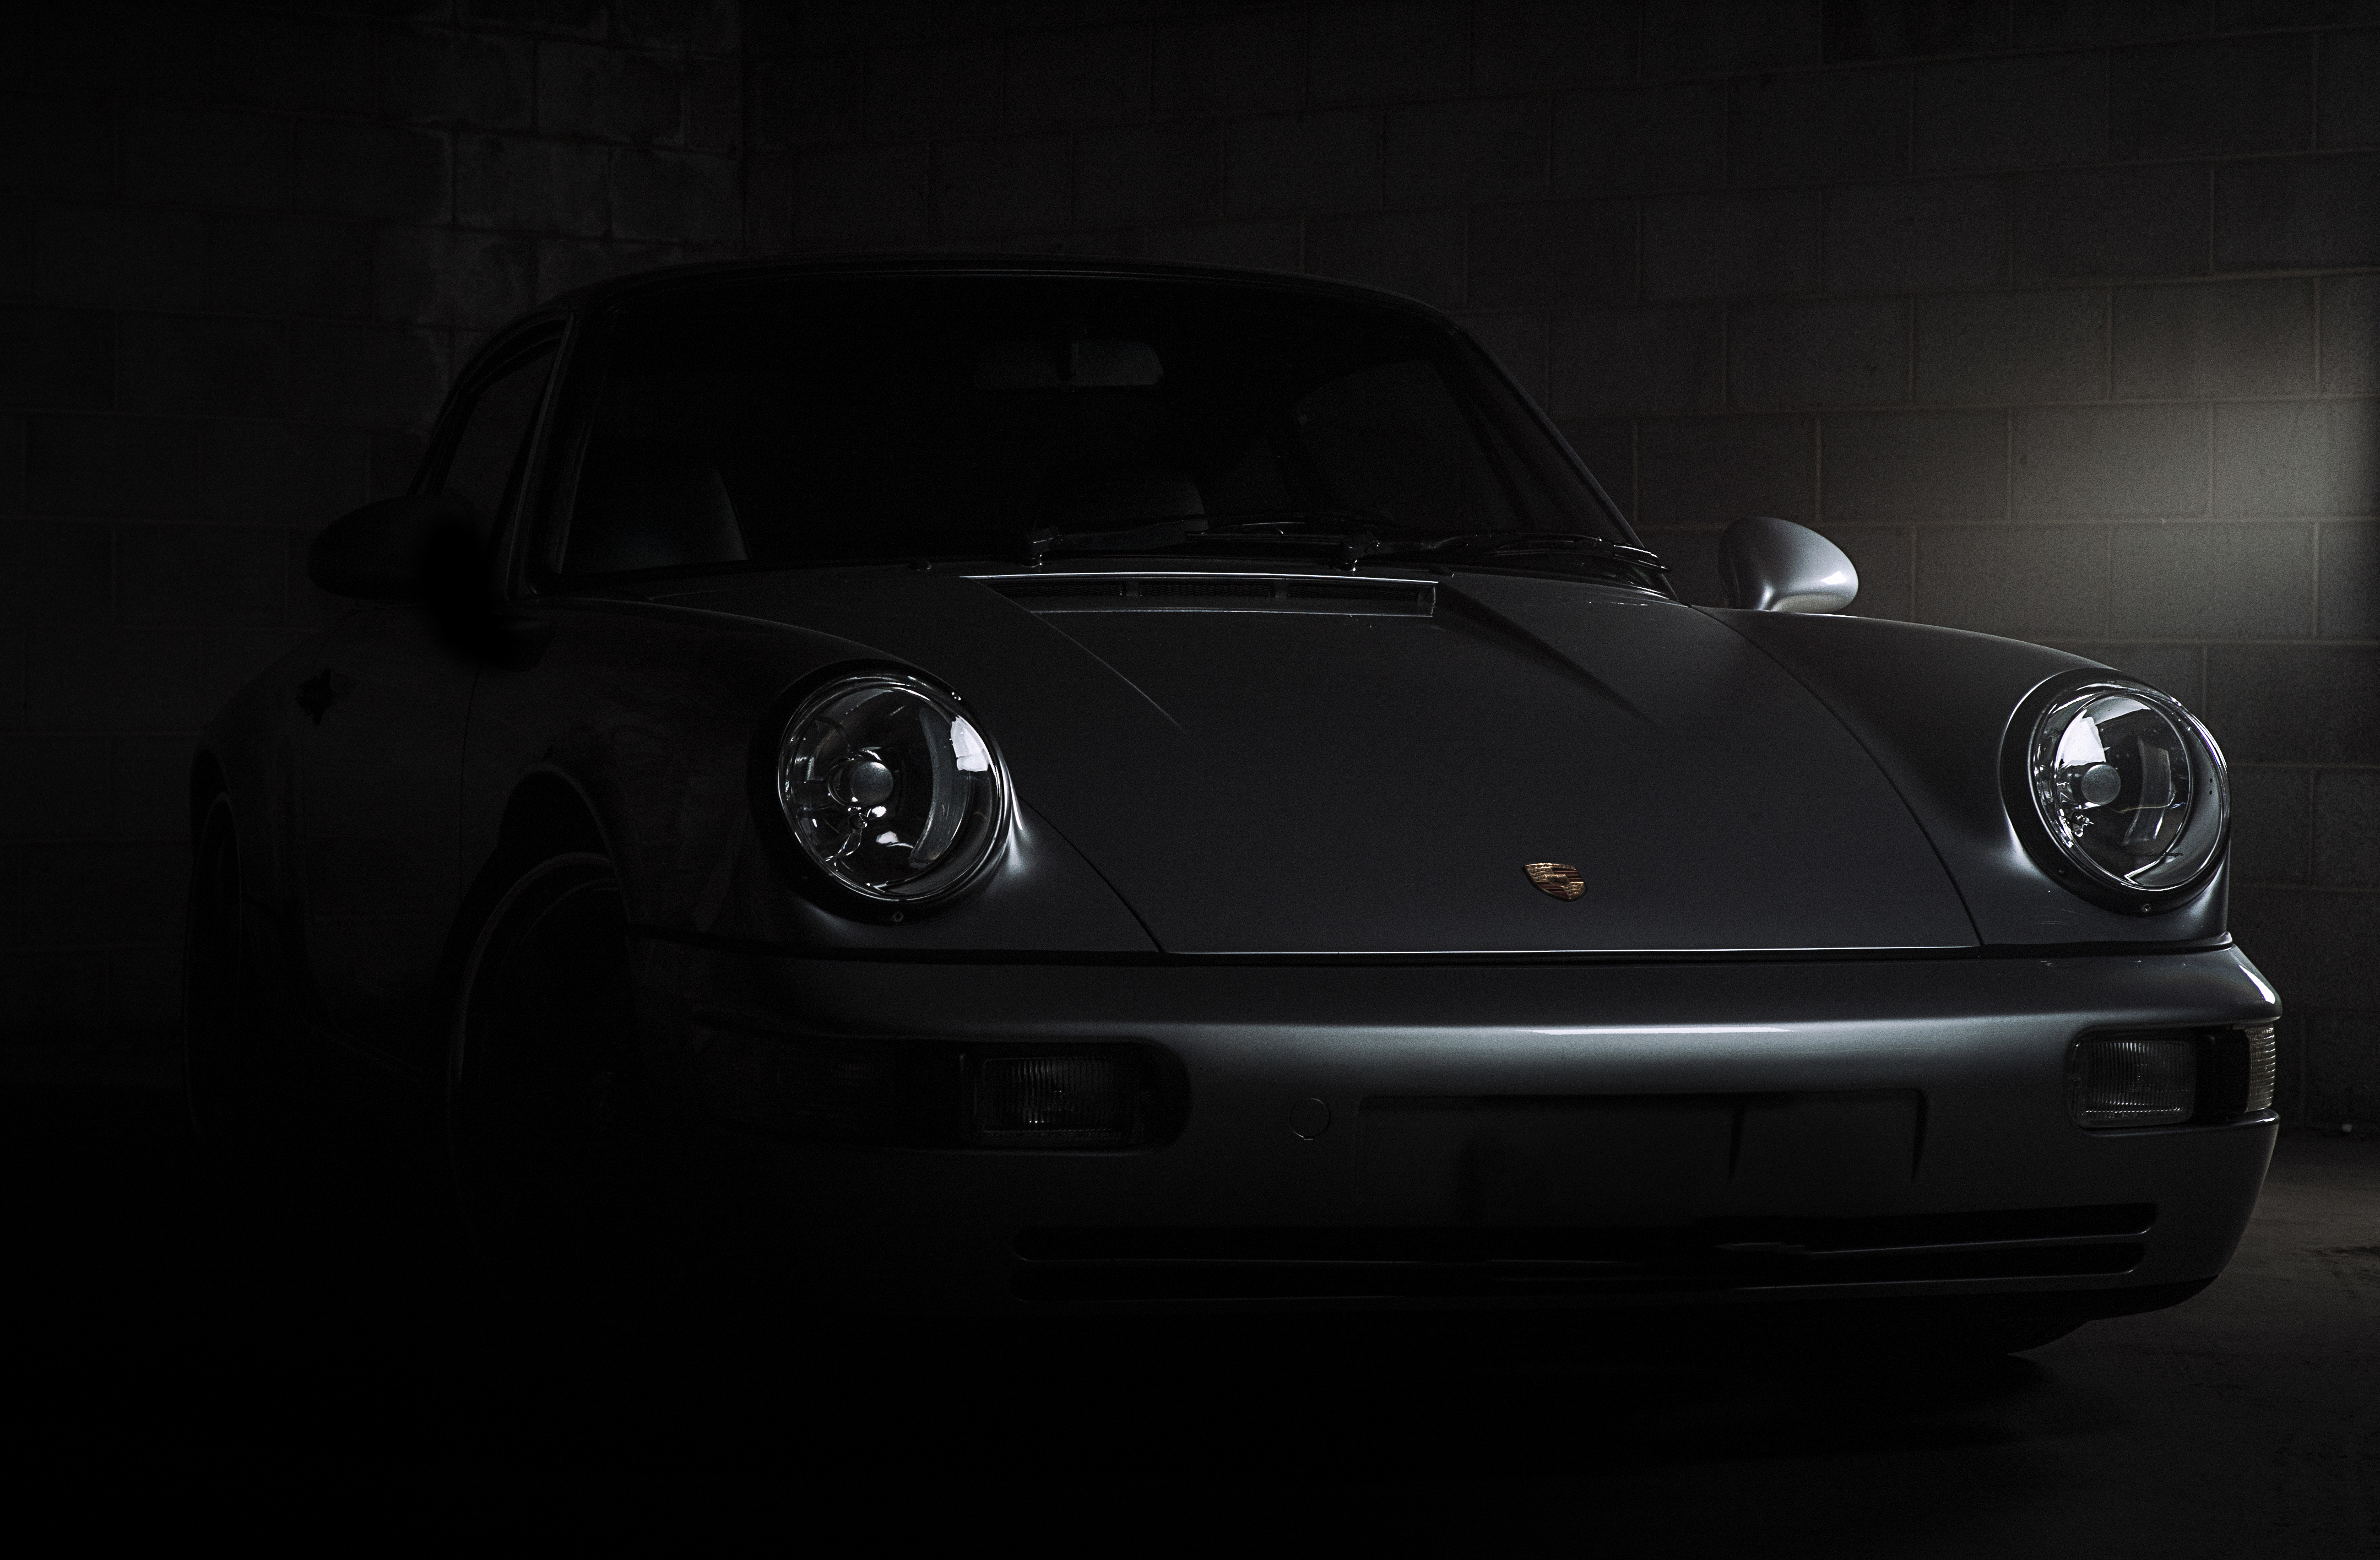 13 Interesting Cool Facts You Didnt Know About Porsche Headlight Wiring Diagram 1968 911 Fascinating We Learned